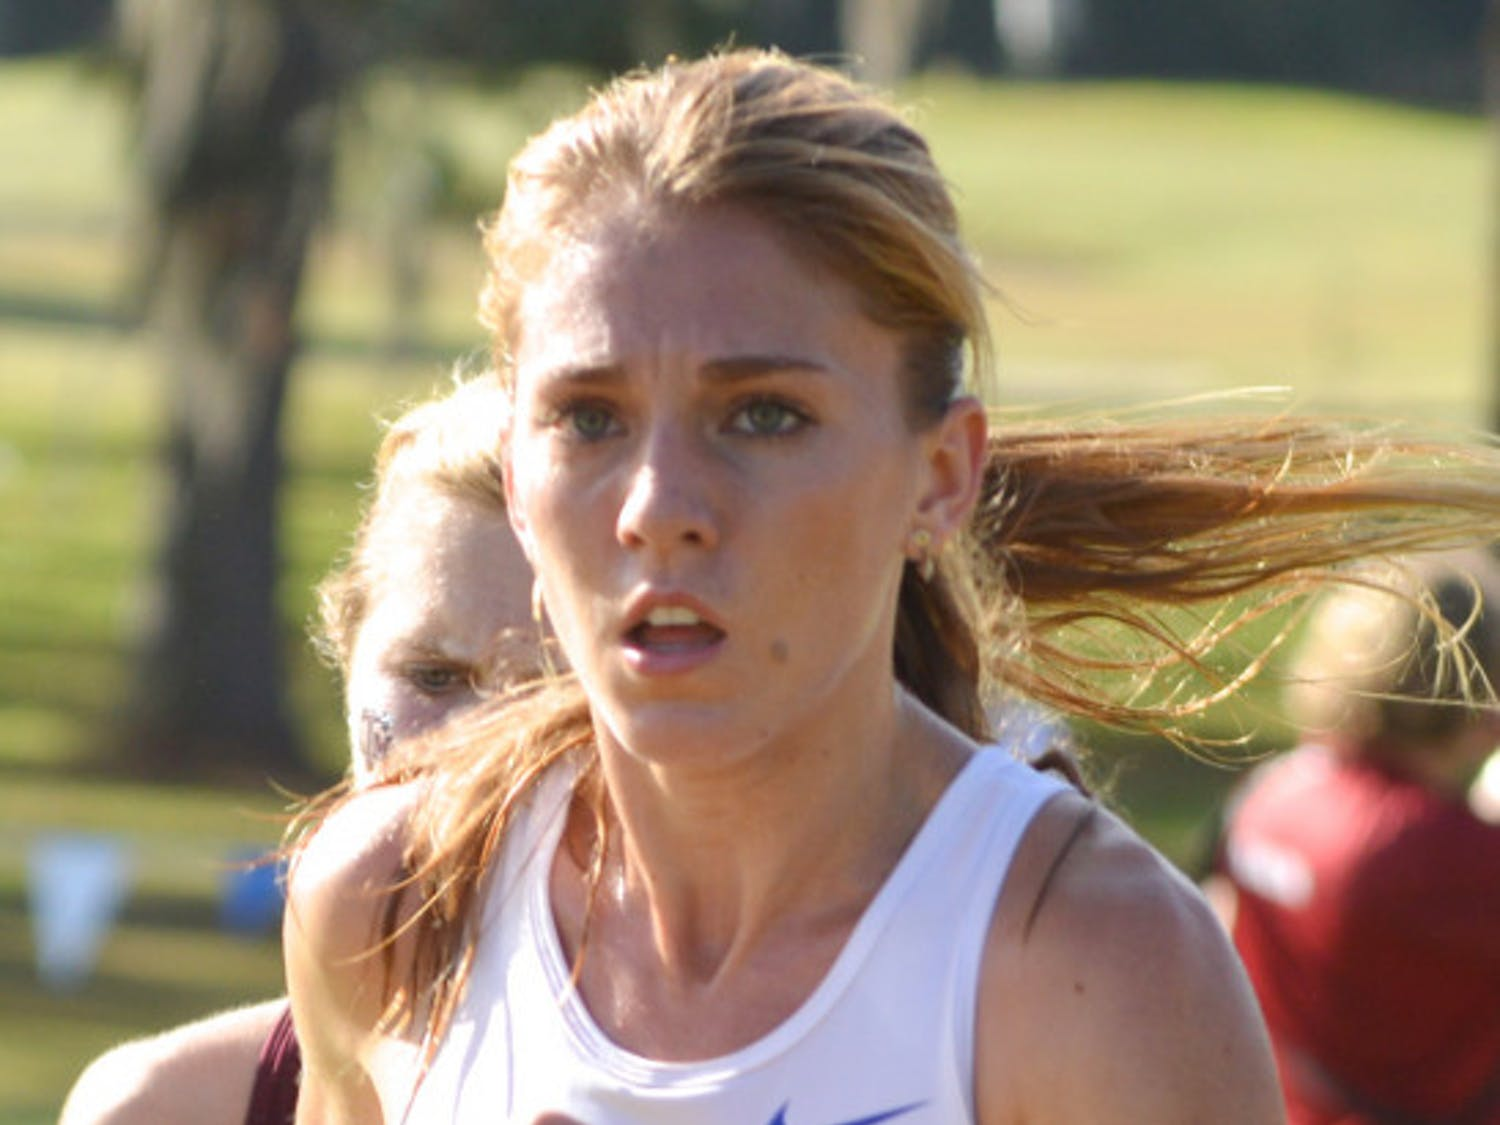 Cory McGee runs in the SEC Cross Country Championships on Nov. 1, 2013, at the Mark Bostick Golf Course.